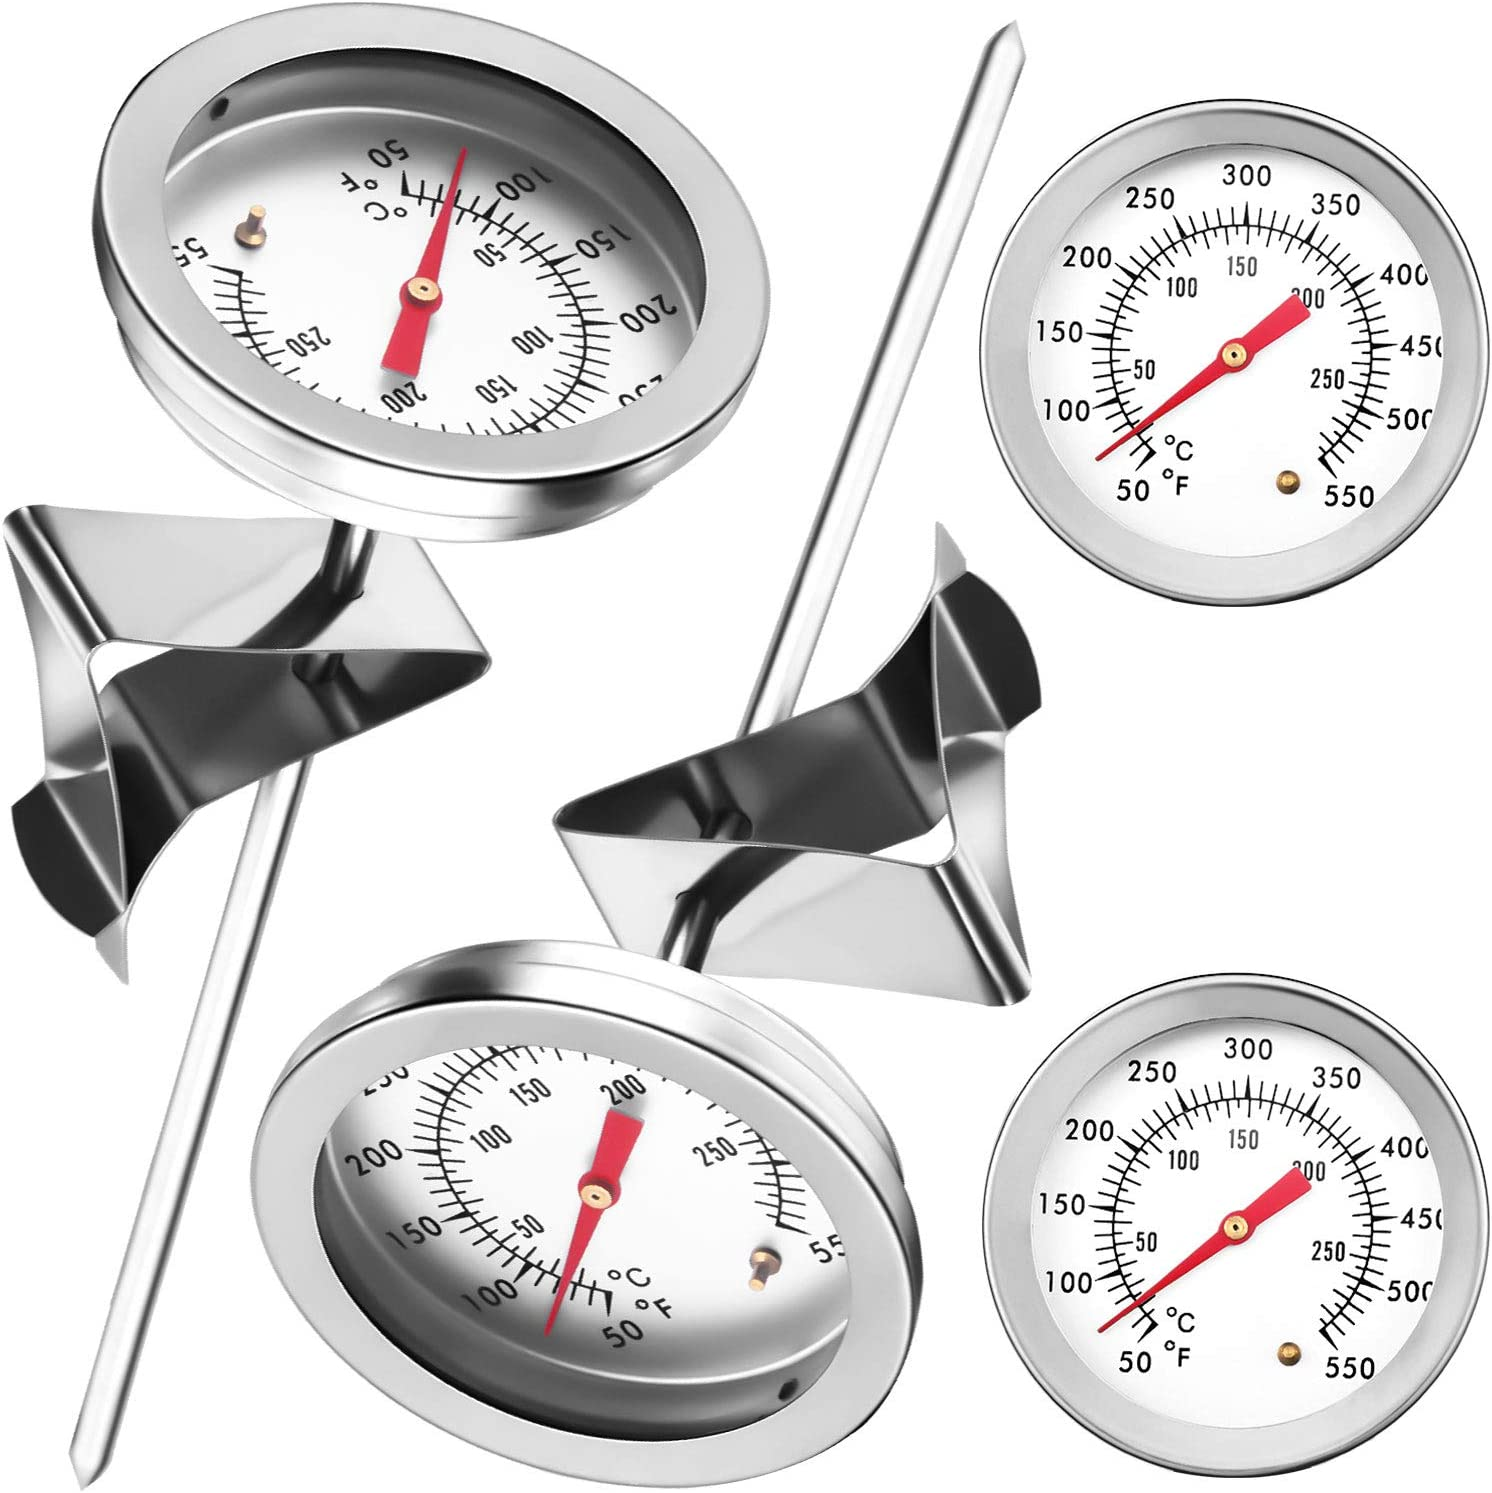 4 Pieces Deep Fry Thermometer with Clip 6 Inch Stem BBQ Grill Thermometer Meat Cooking Food Thermometer Stainless Steel Dial Thermometer with Instant Read